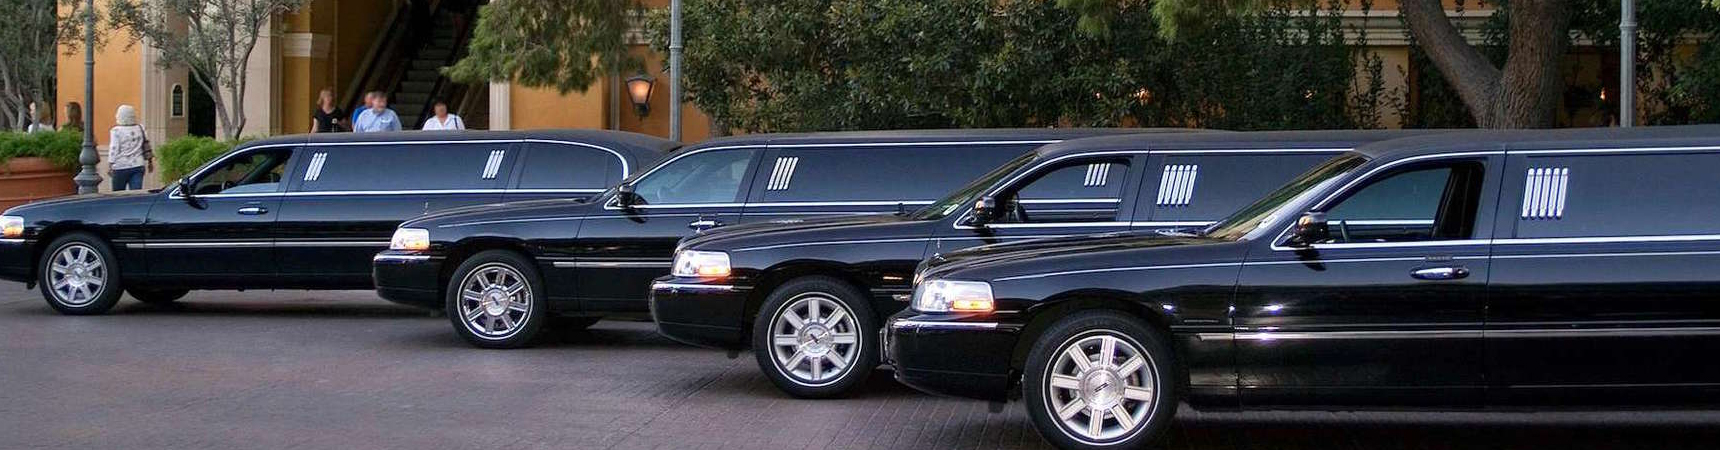 Top Reasons Why Calgary Limo Services Vary in Price